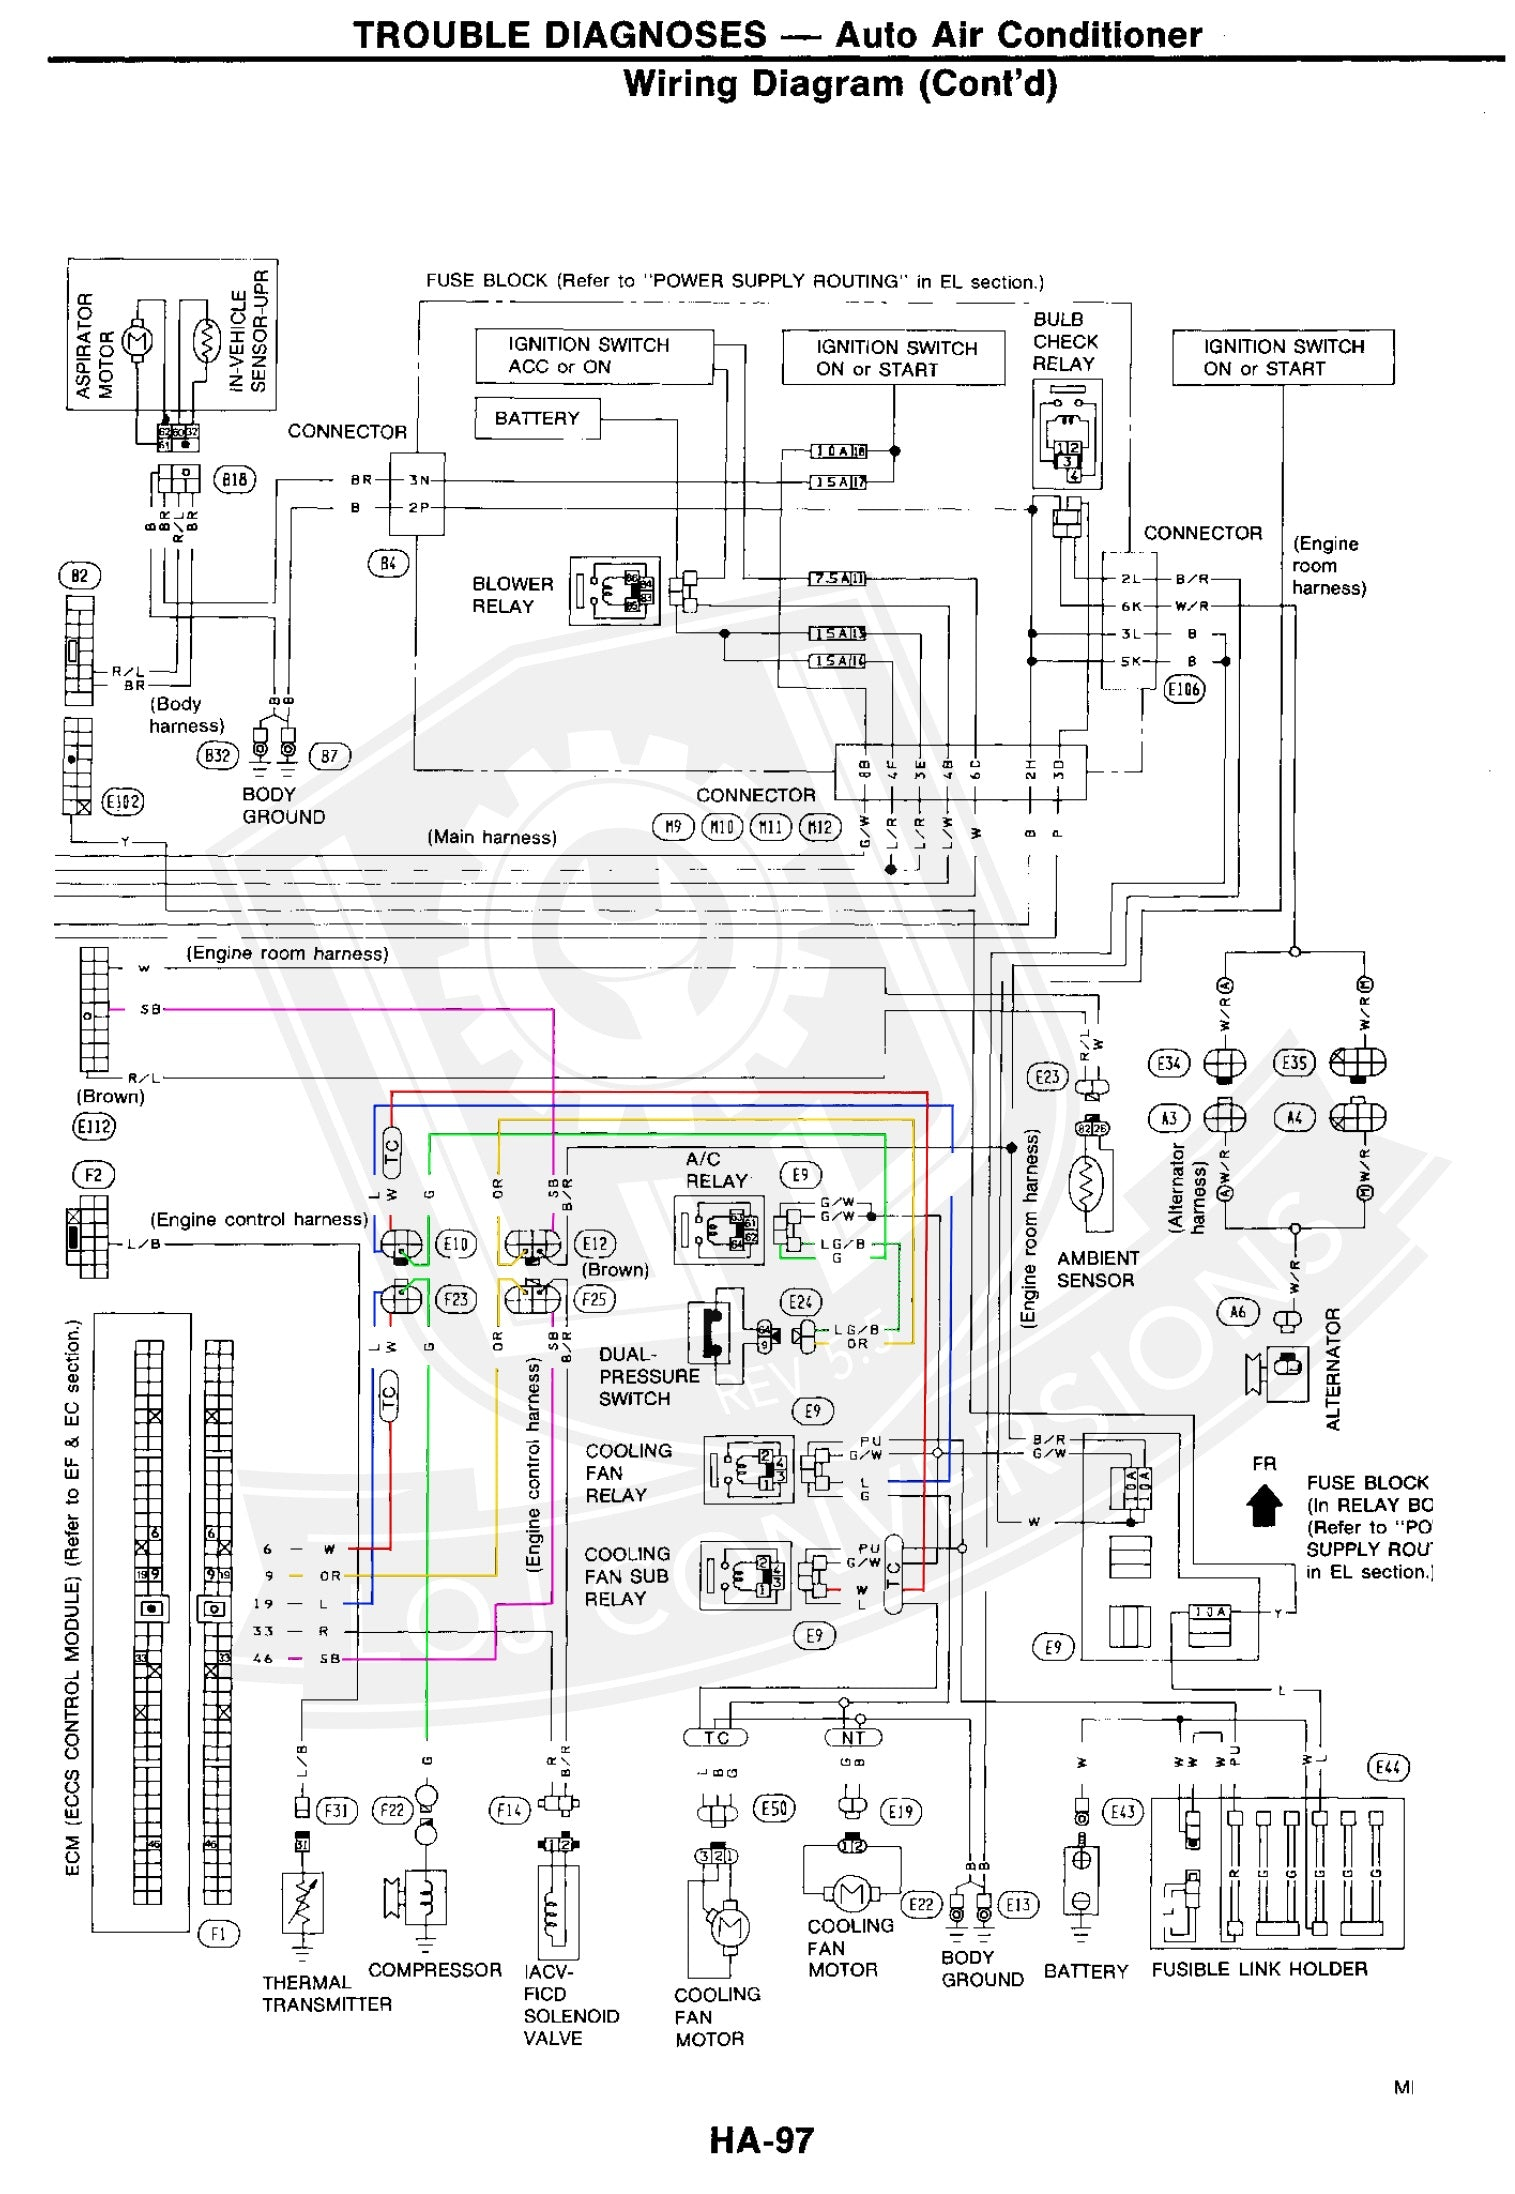 300ZX_AC_Wiring_Engine_Swap_02?9464186101000764173 wiring the ac in a 300zx engine conversion loj conversions 300zx engine wiring harness diagram at soozxer.org